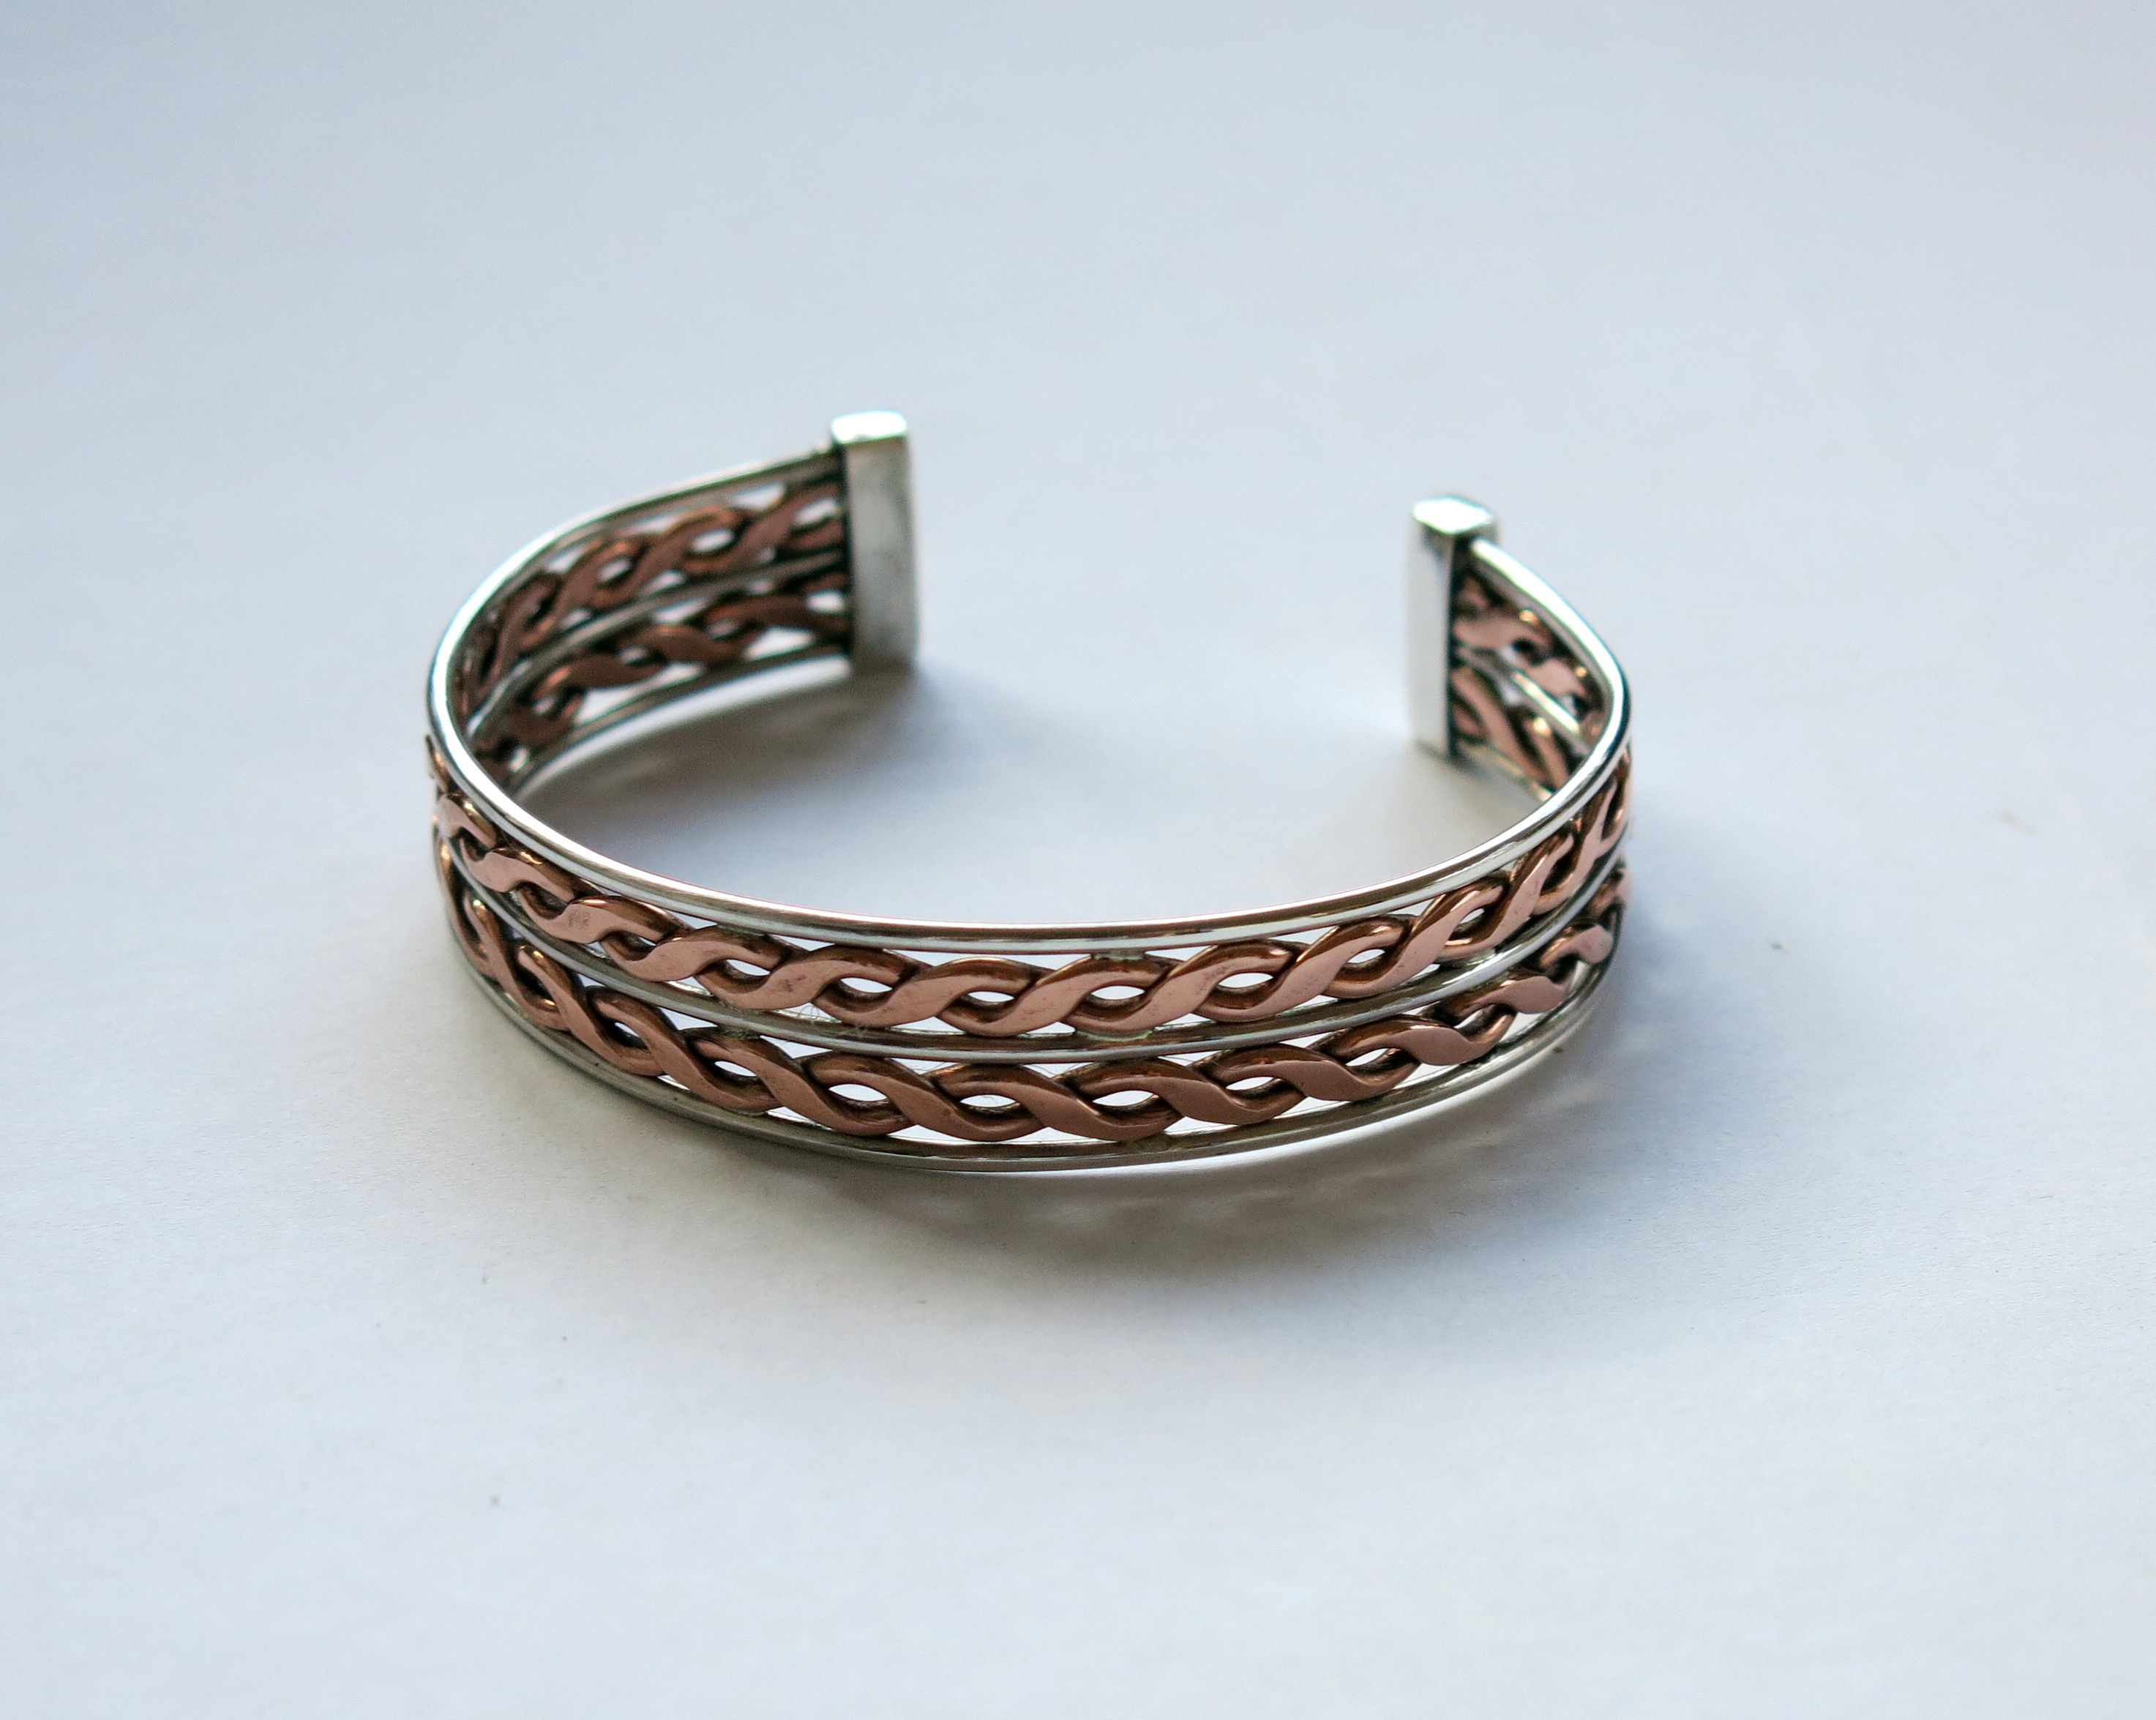 Double twist silver and copper bangle